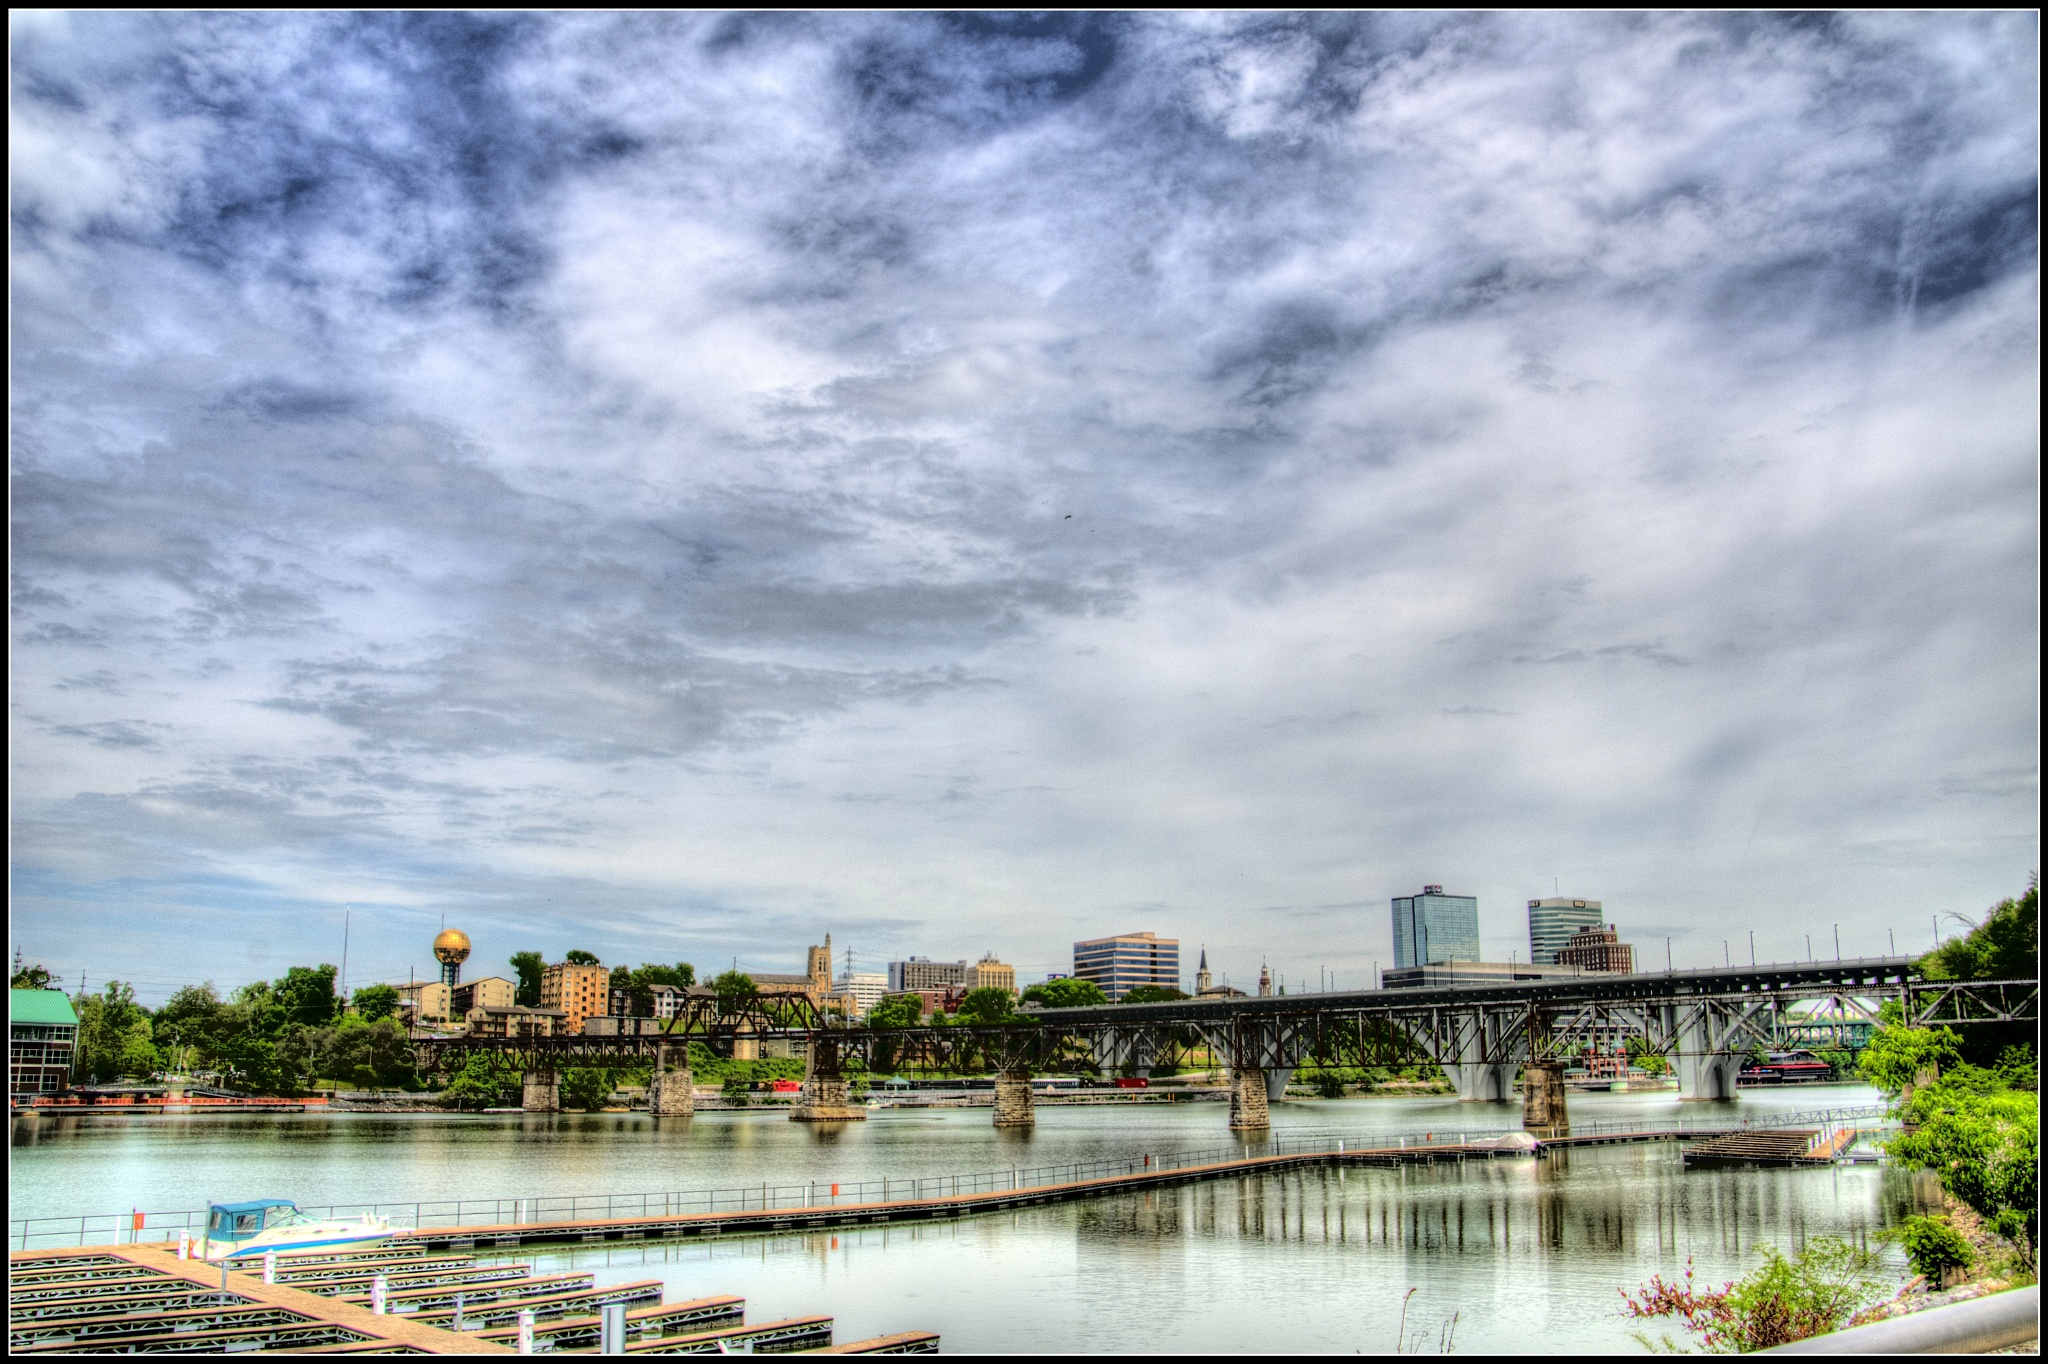 """Knoxville Tn. Skyline"" by PeterMichael"